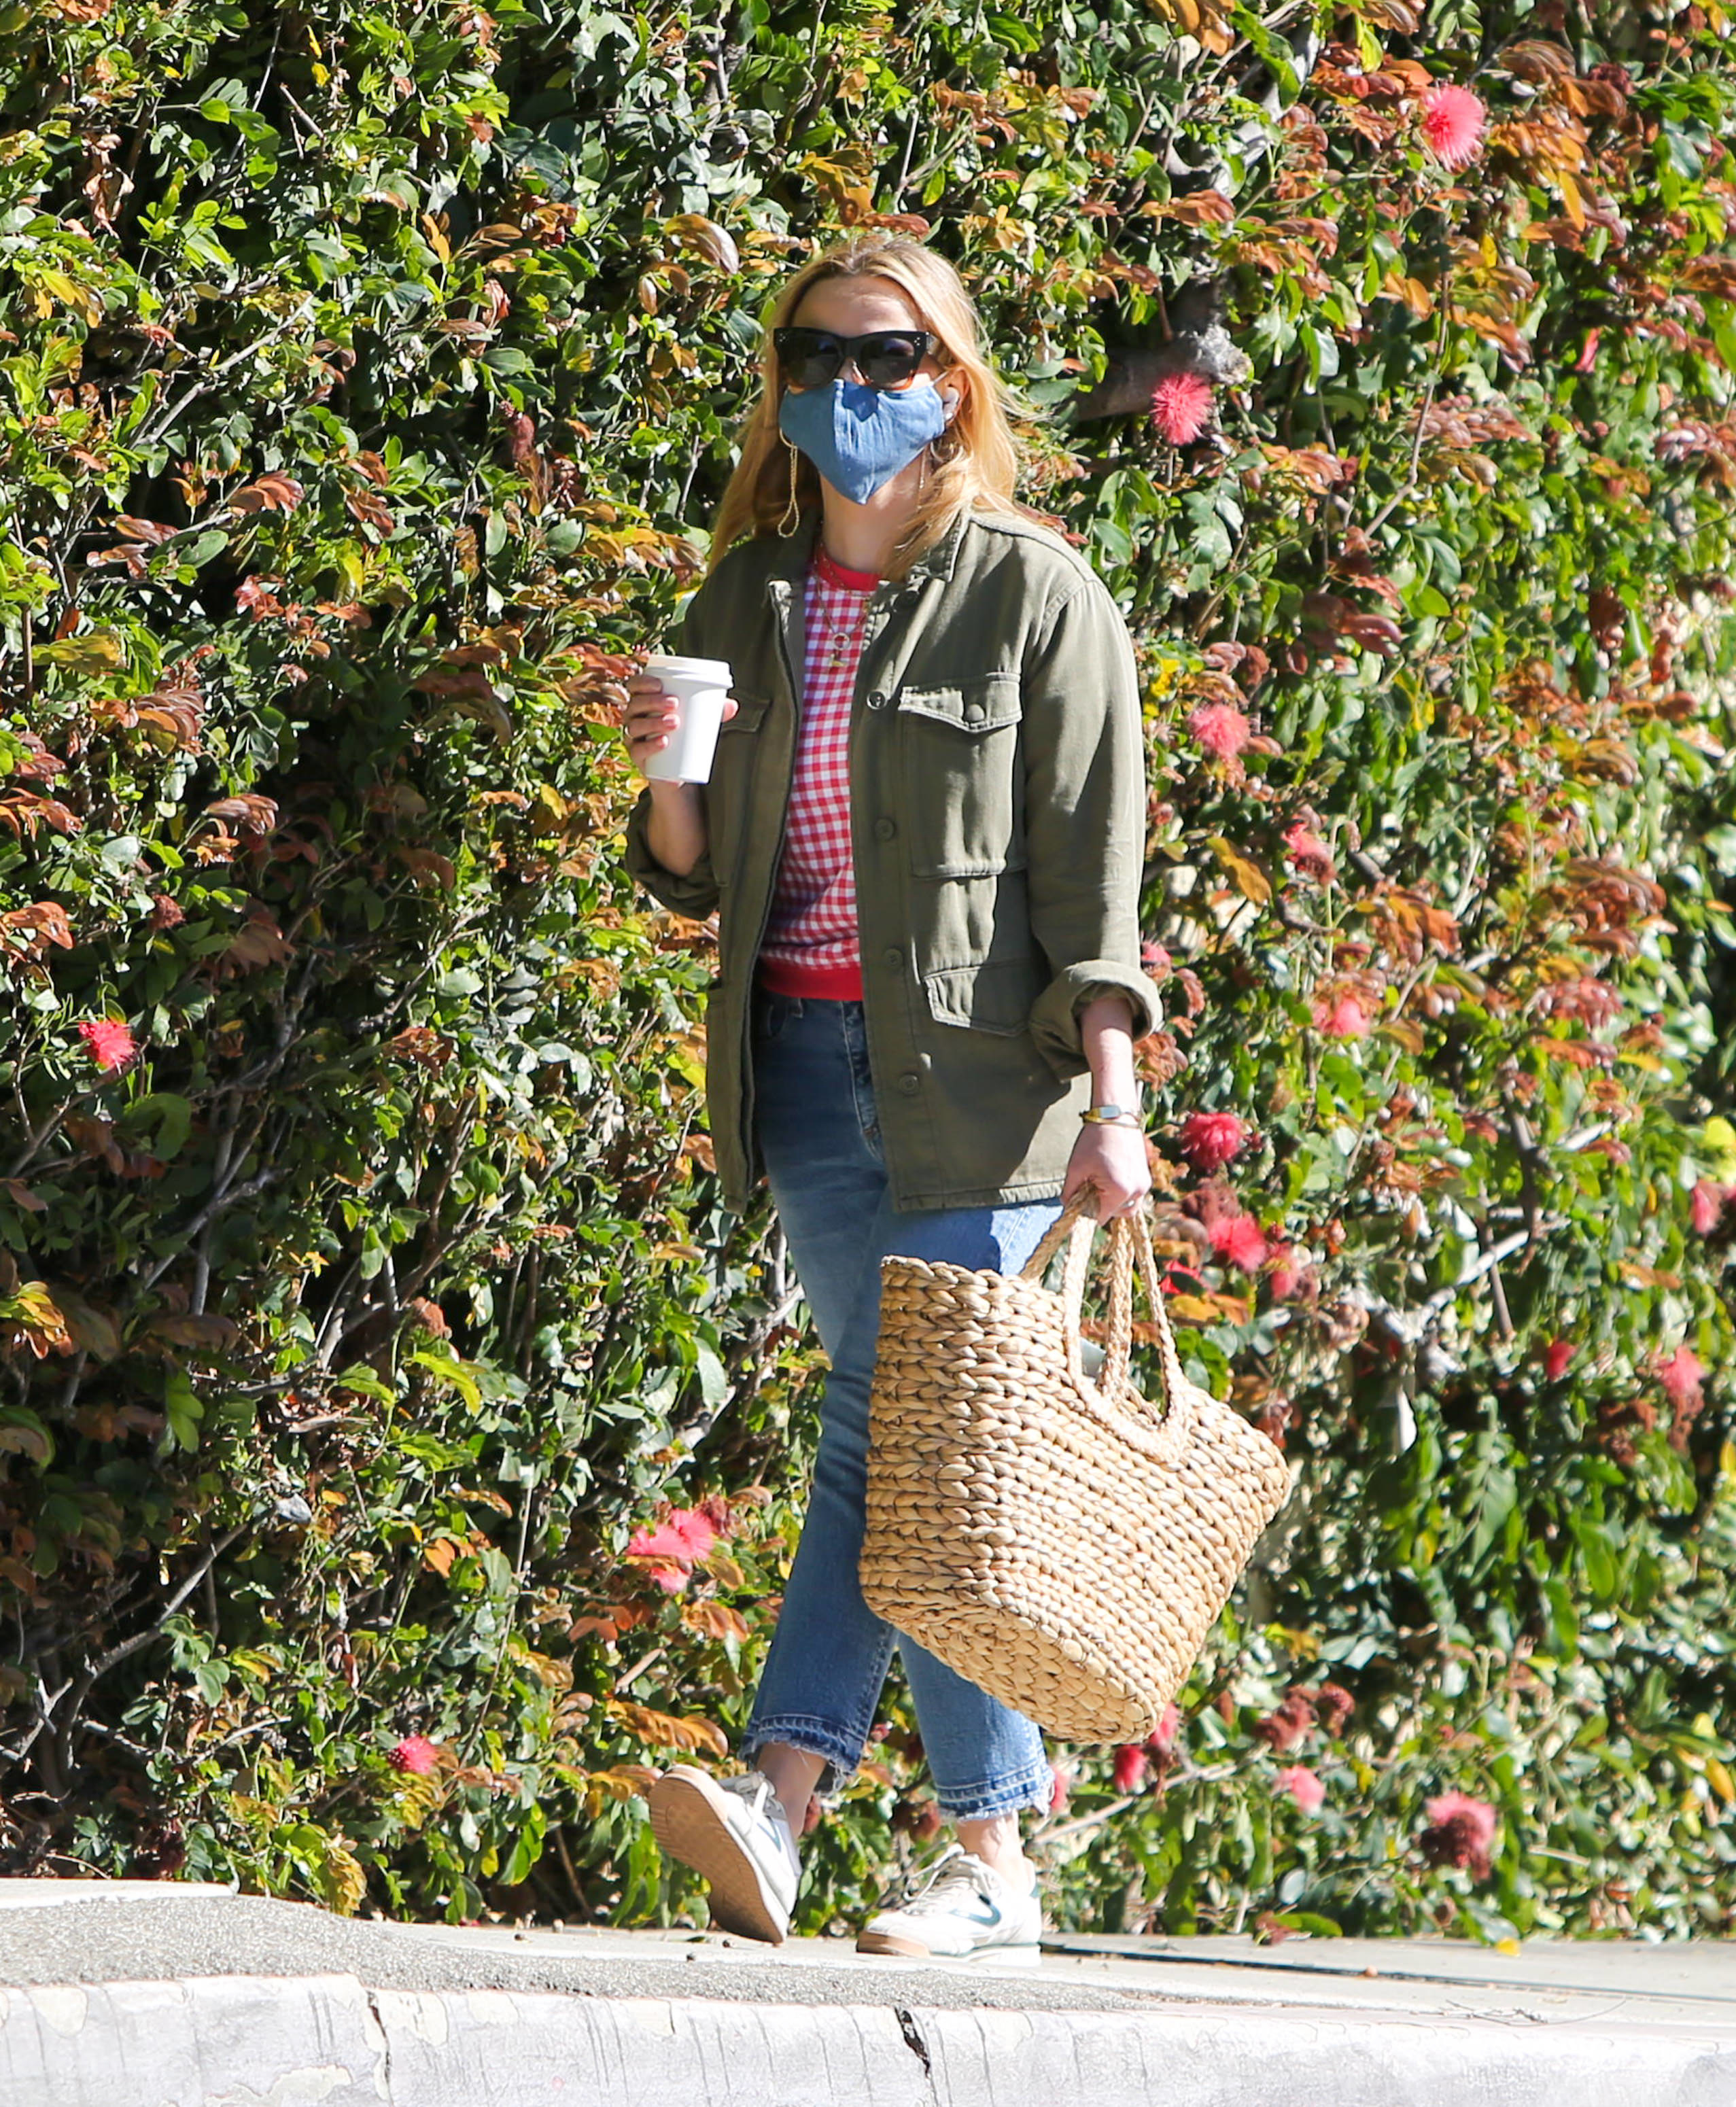 Reese wears a patterned sweater underneath a cargo jacket. She's also wearing a face mask, sneakers, sunglasses, straight leg jeans, and holding a giant woven basket purse.